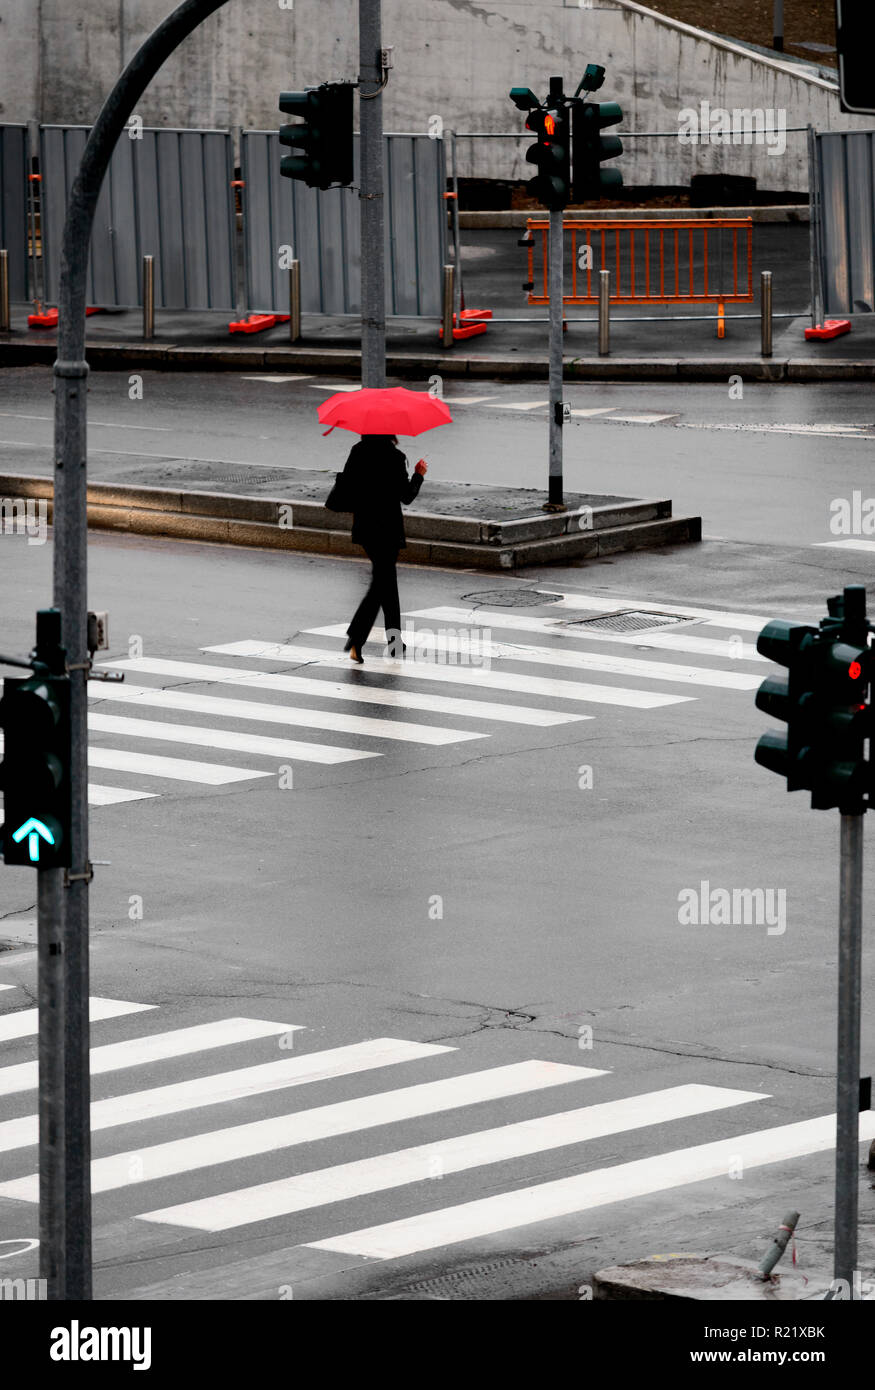 Woman walking over the crosswalk in the rain with red umbrella Stock Photo